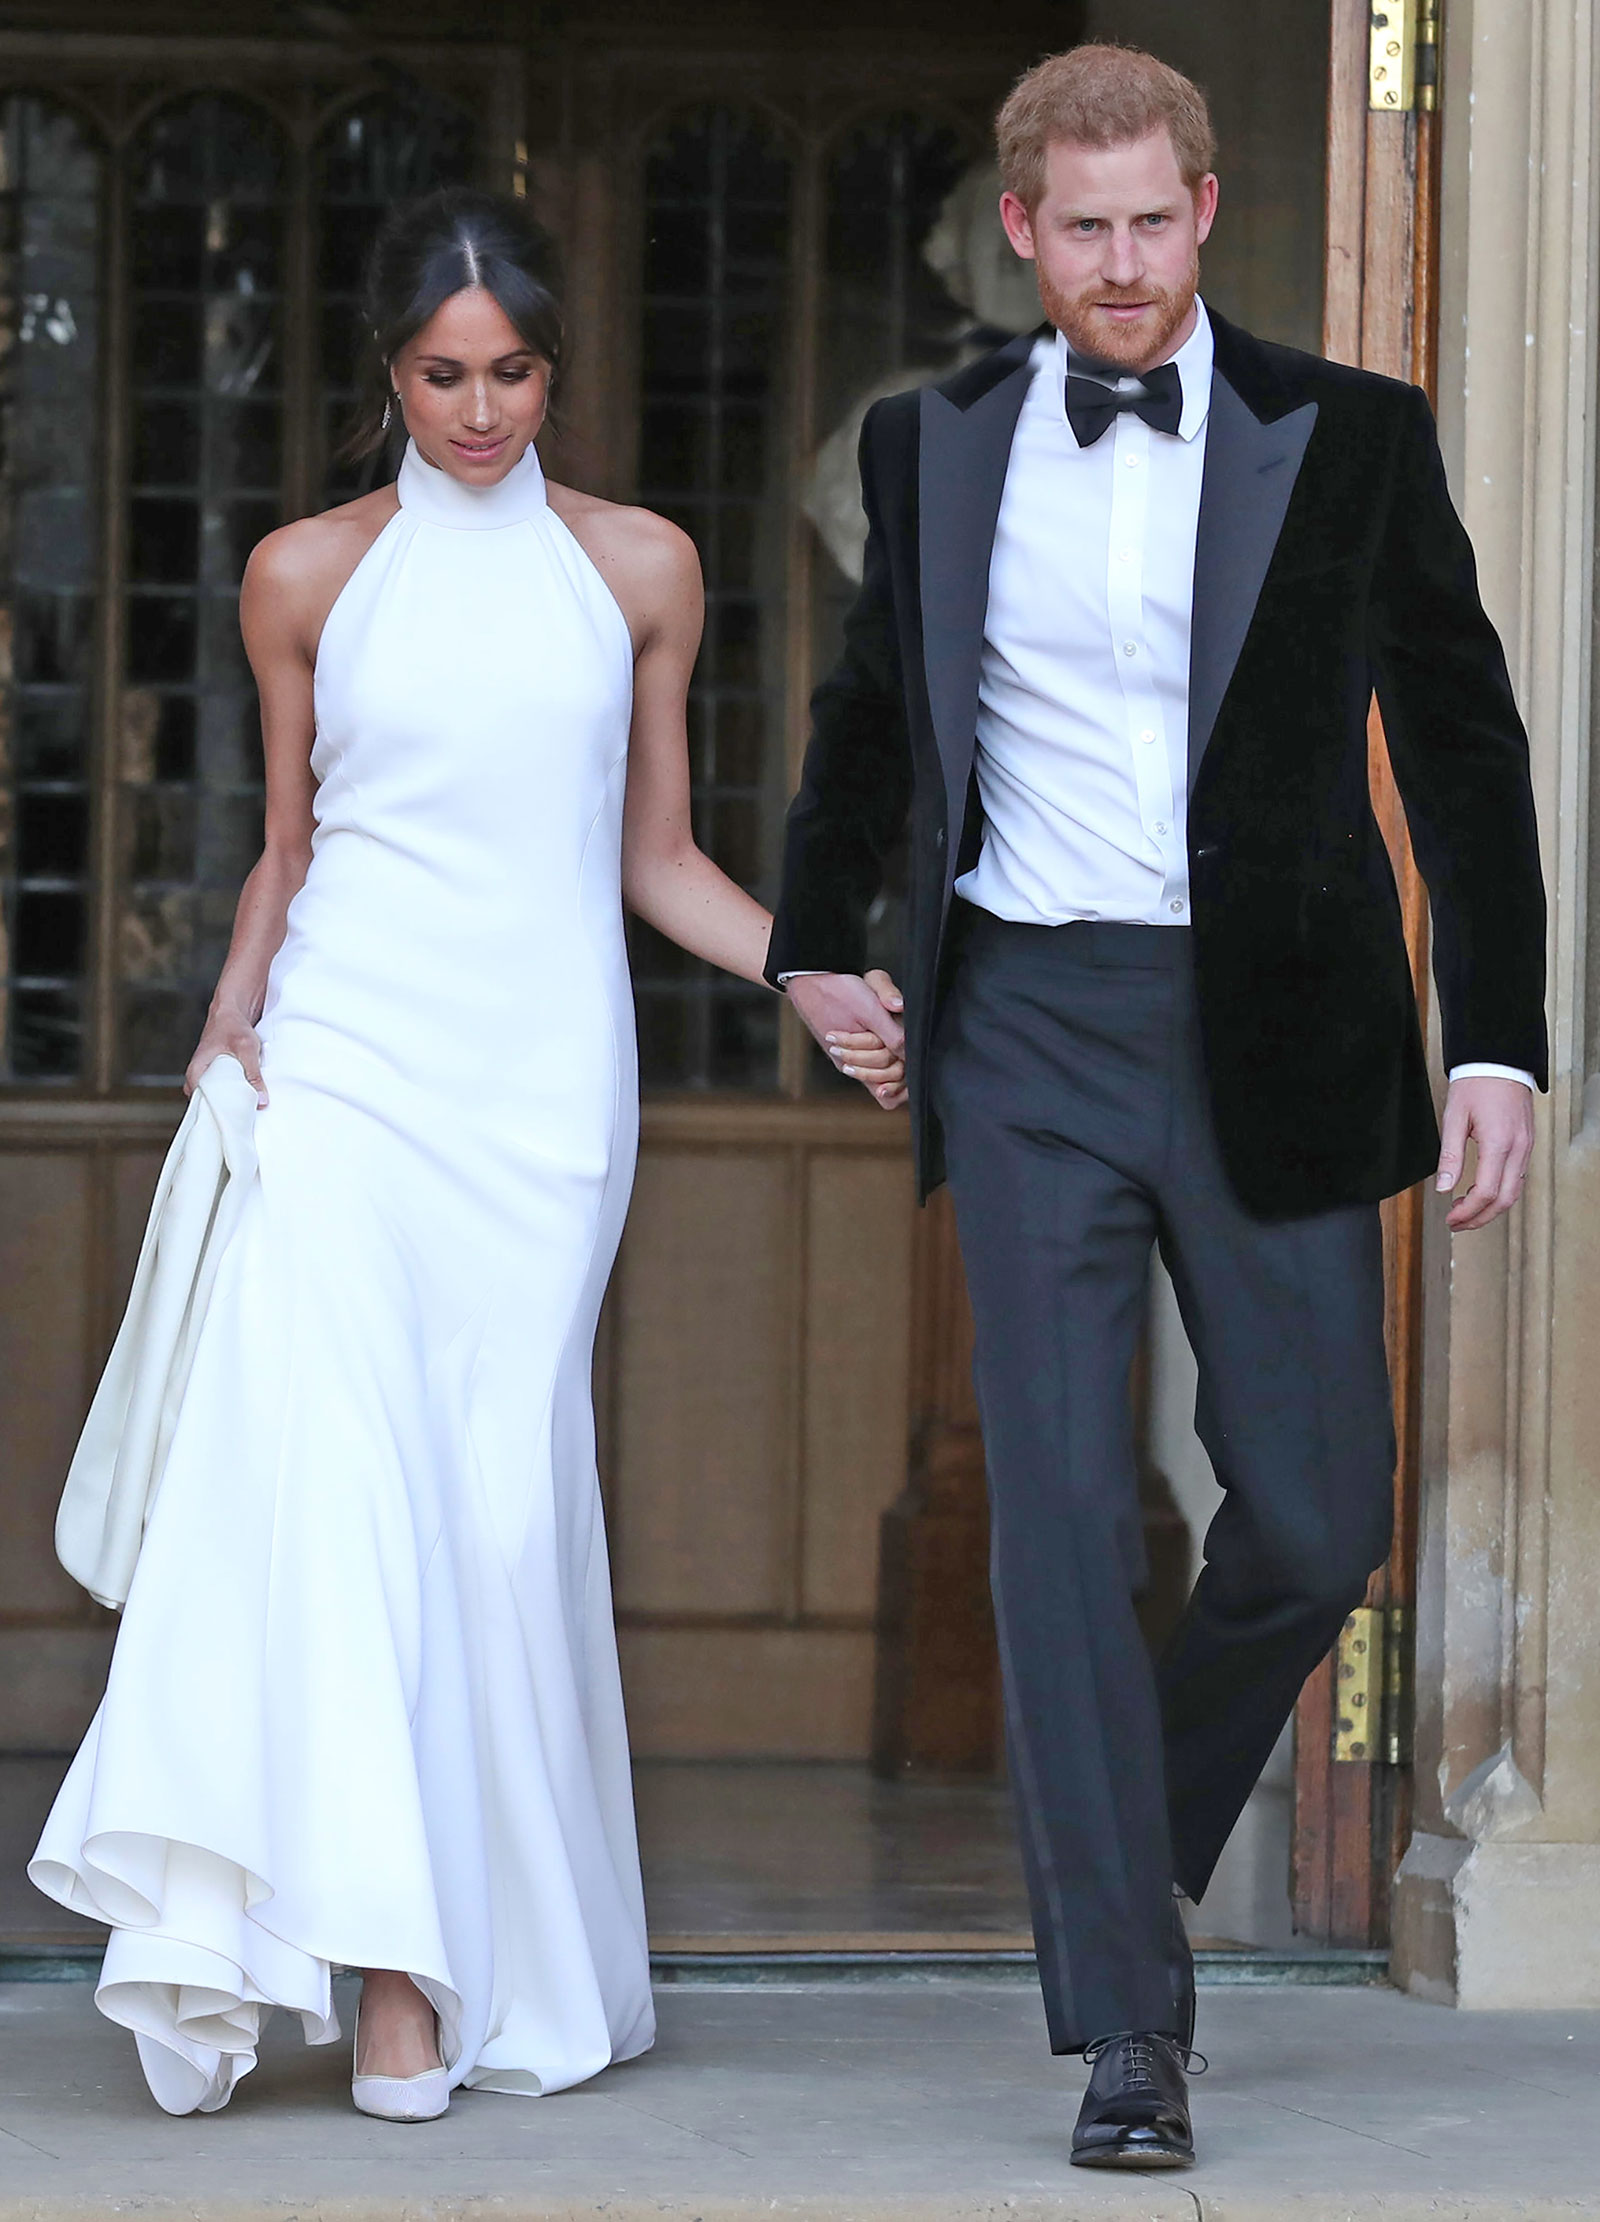 Meghan Markle wedding gown halter look for less